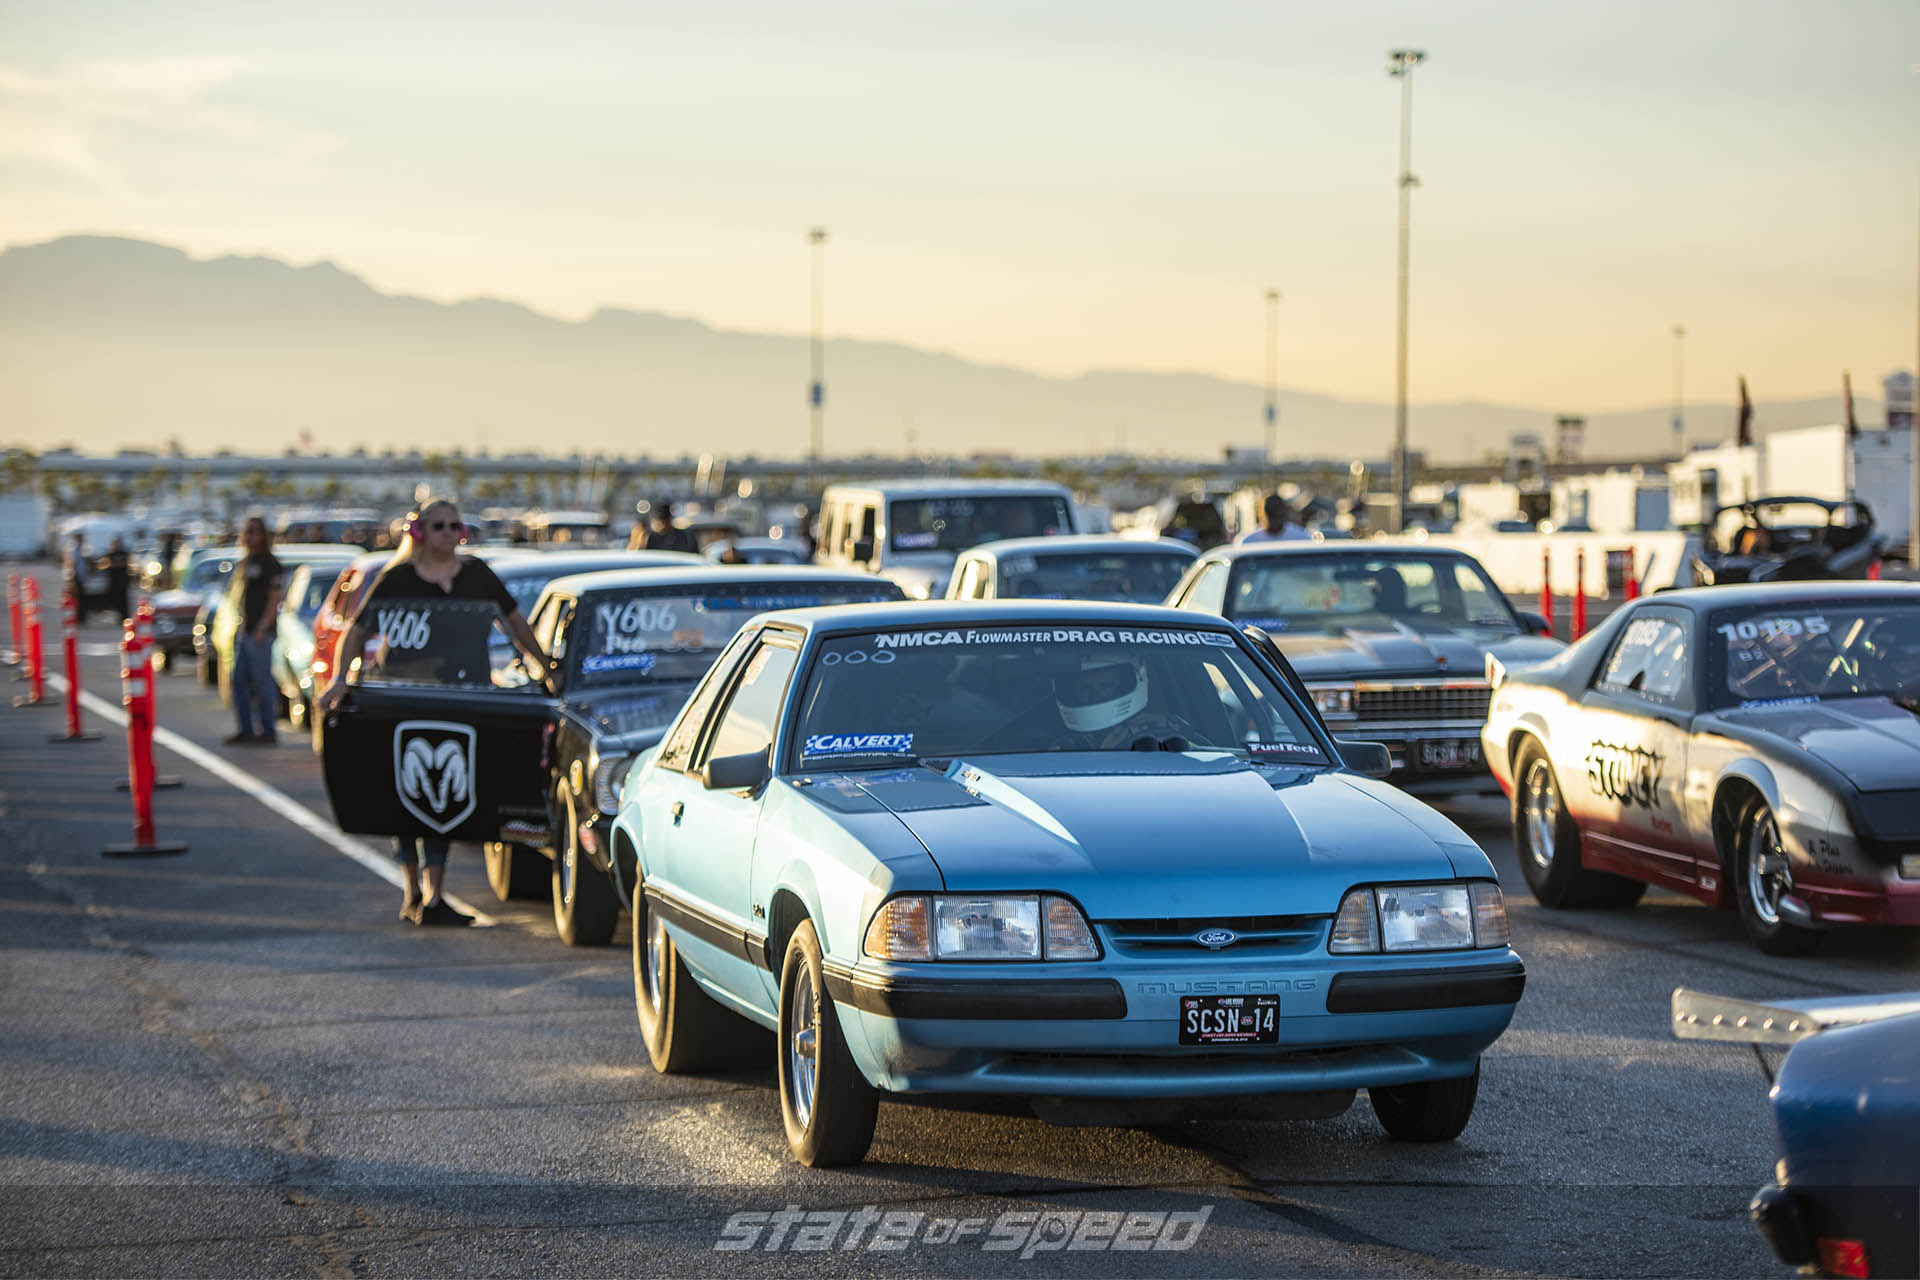 Cars waiting to race at the dragstrip